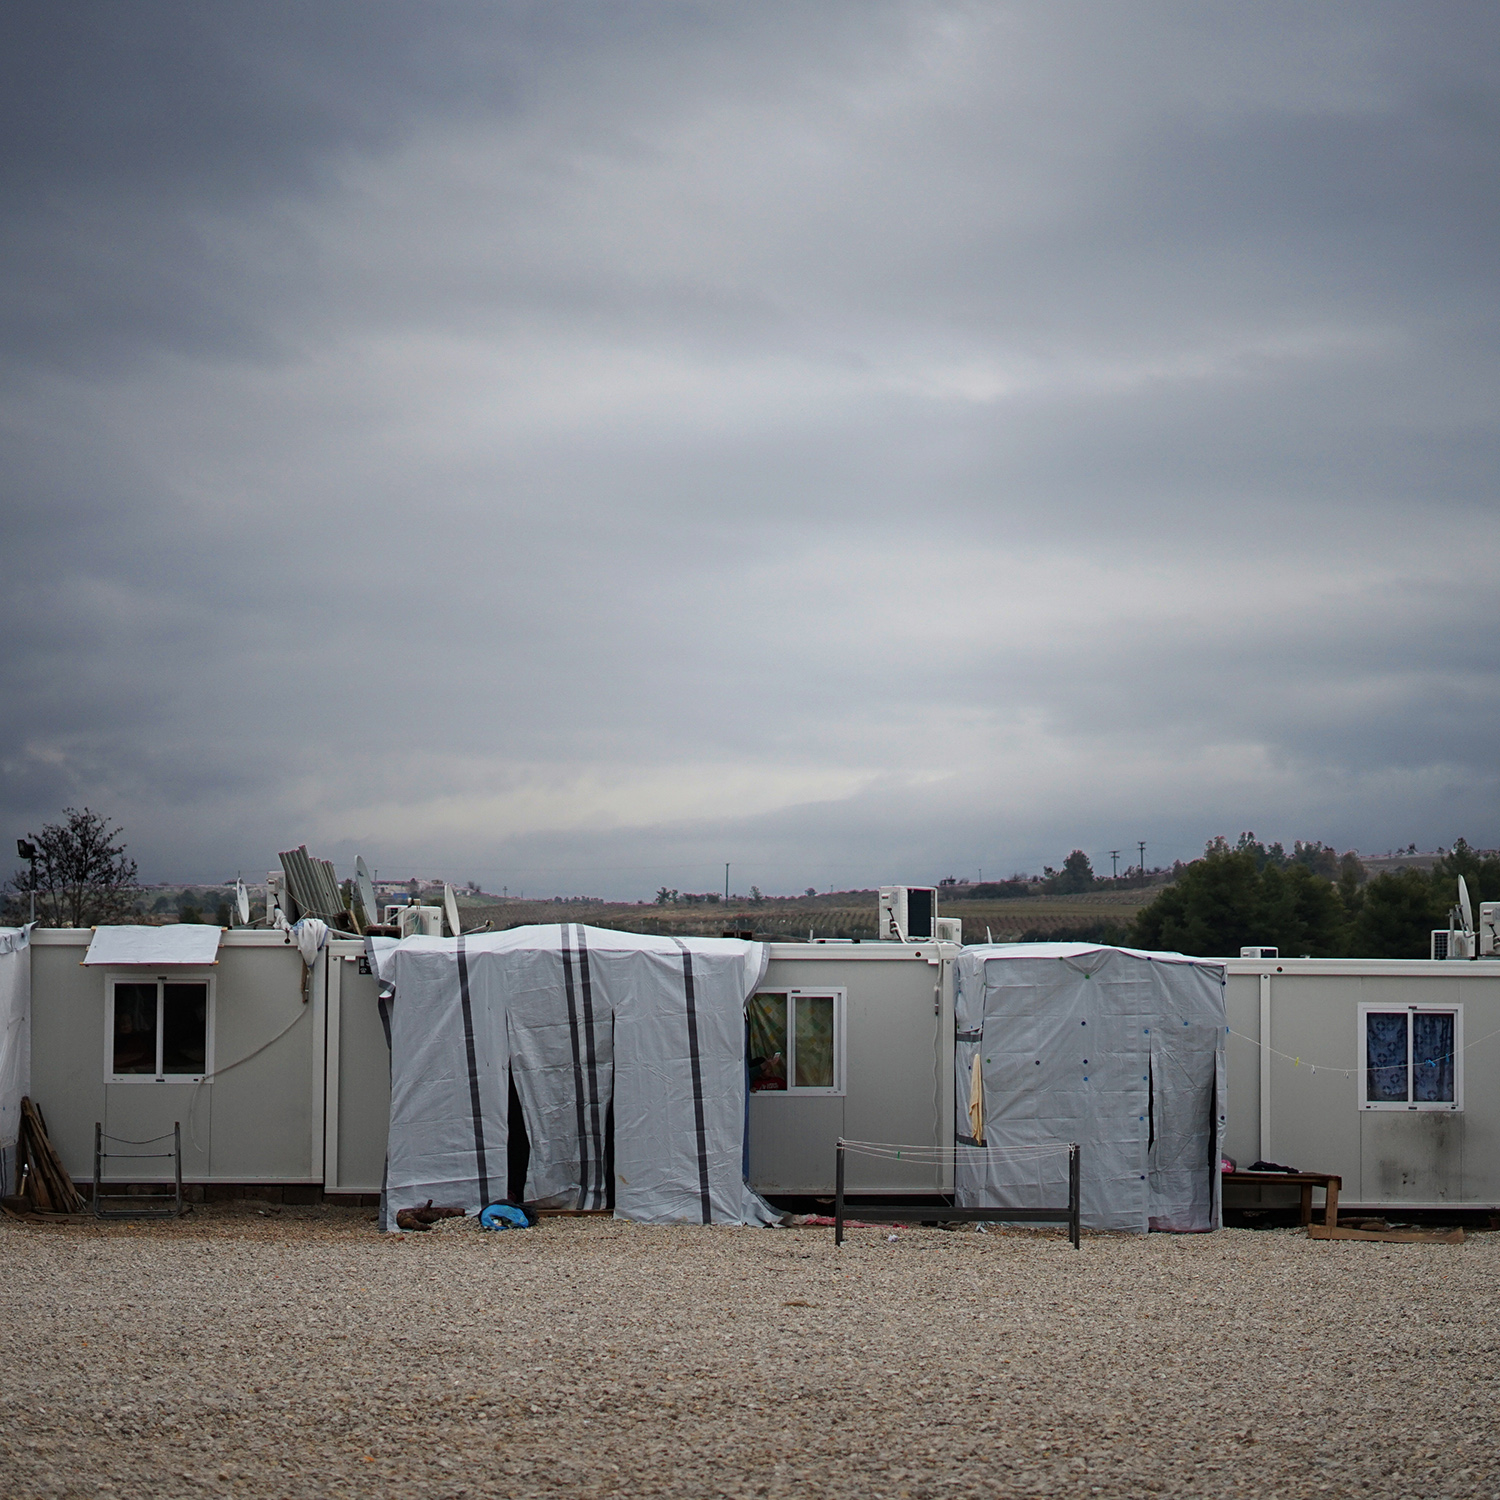 photograph of small, temporary housing units in a desolate area.